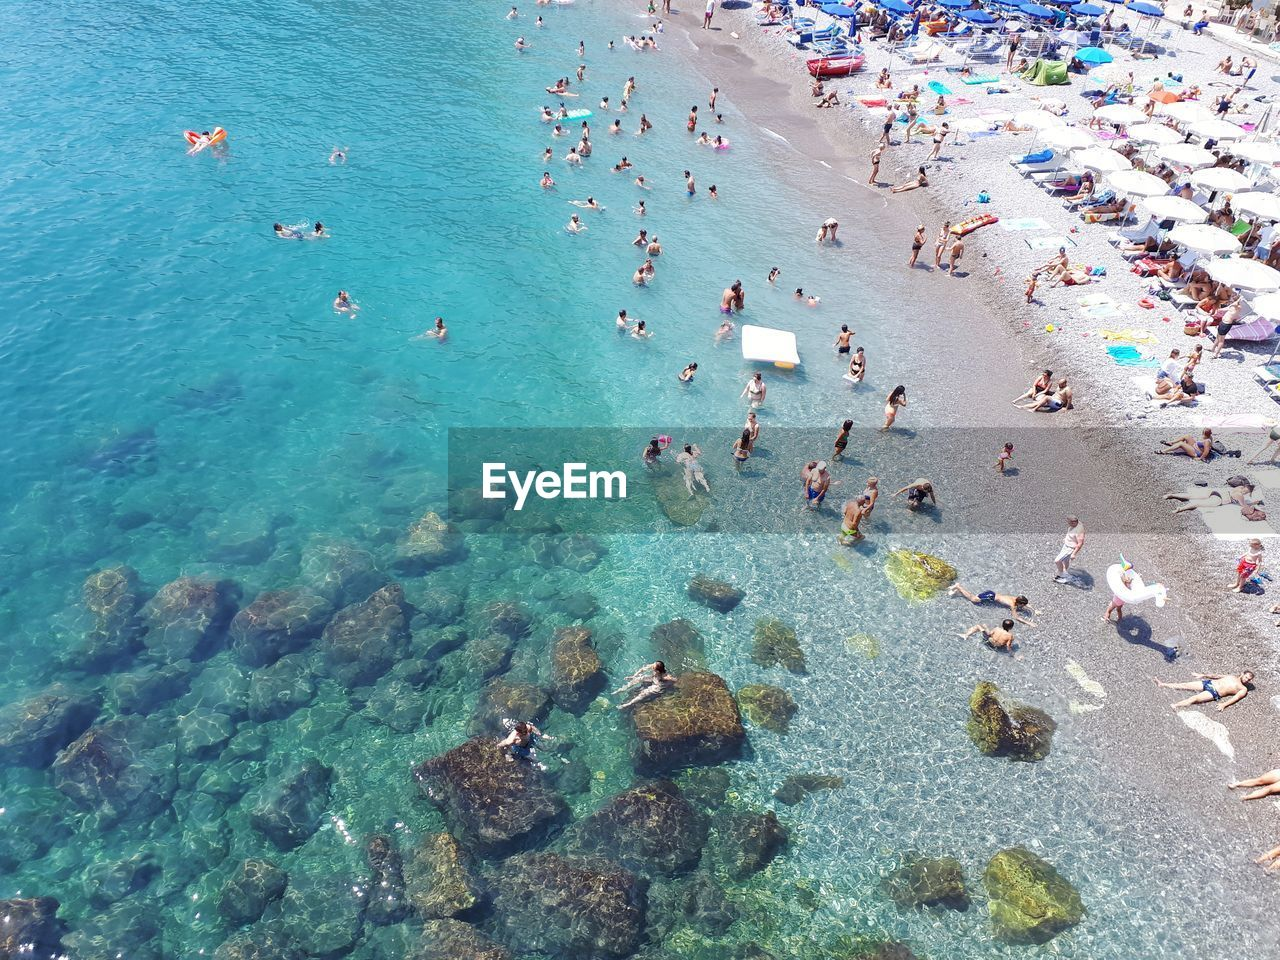 water, sea, group of people, high angle view, beach, land, large group of people, crowd, rock, nature, swimming, solid, day, women, vacations, rock - object, real people, trip, holiday, turquoise colored, outdoors